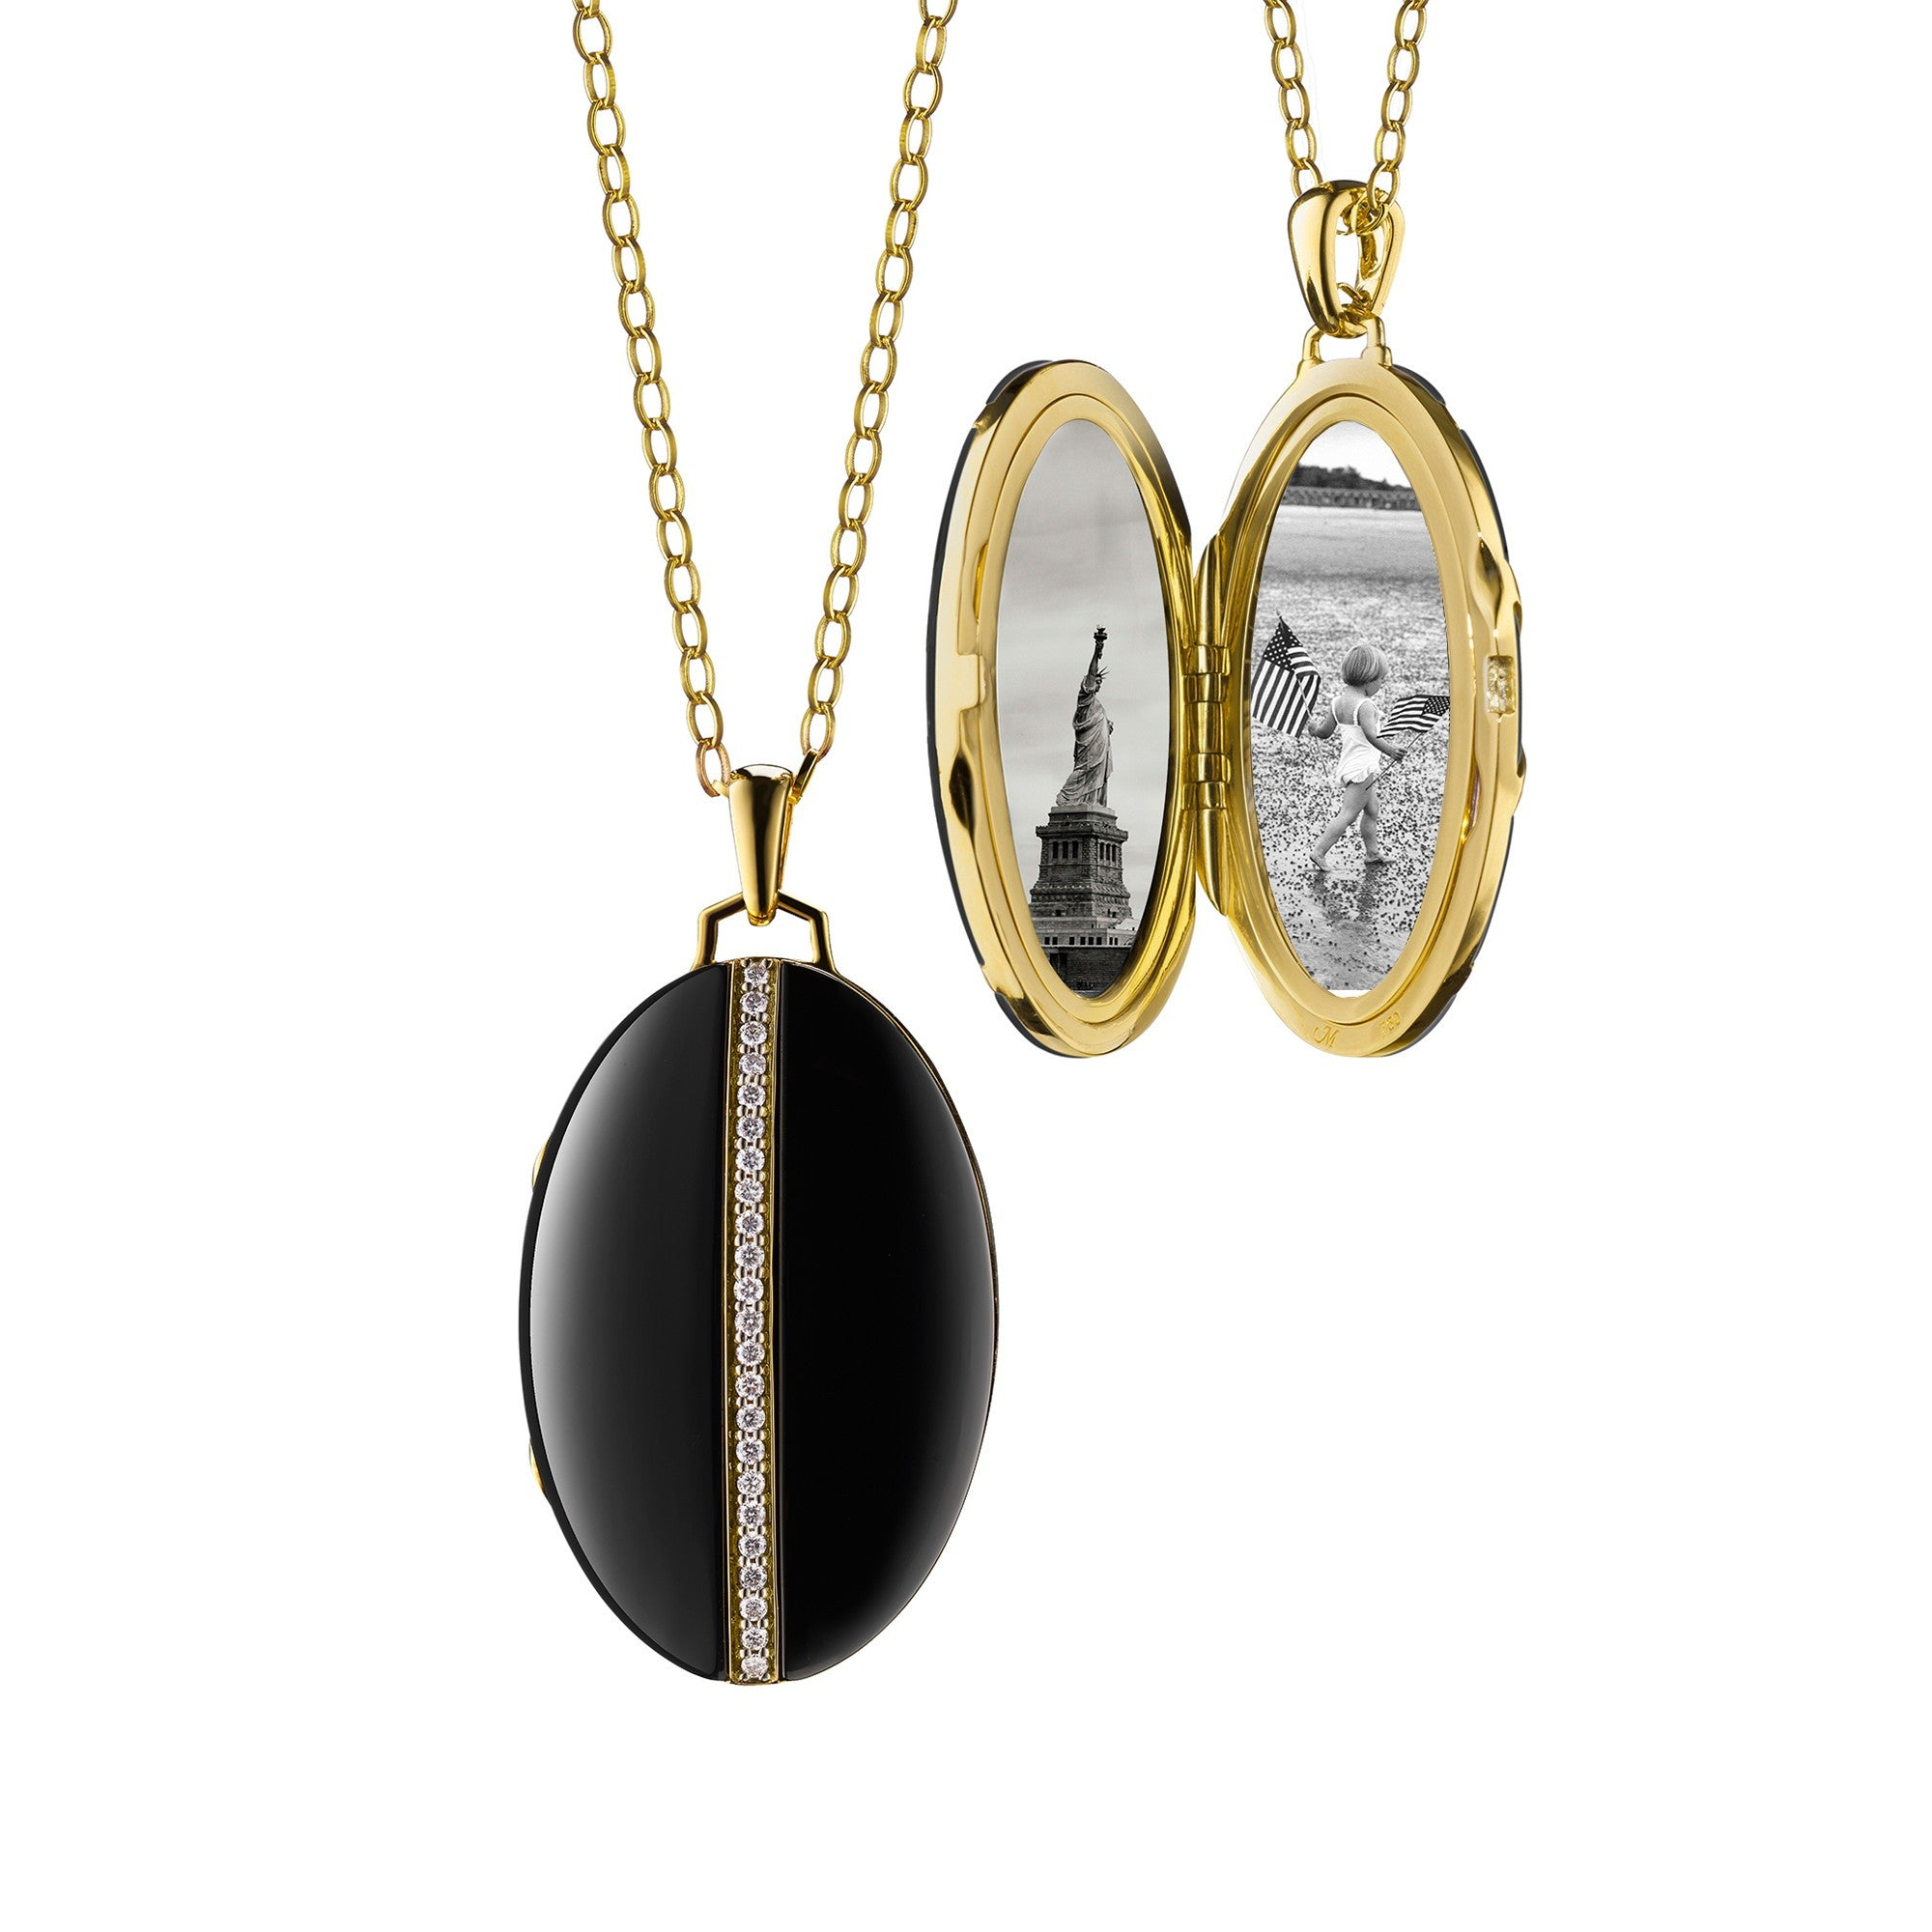 18K Yellow Gold Oval Black Ceramic Locket With Diamond Accents